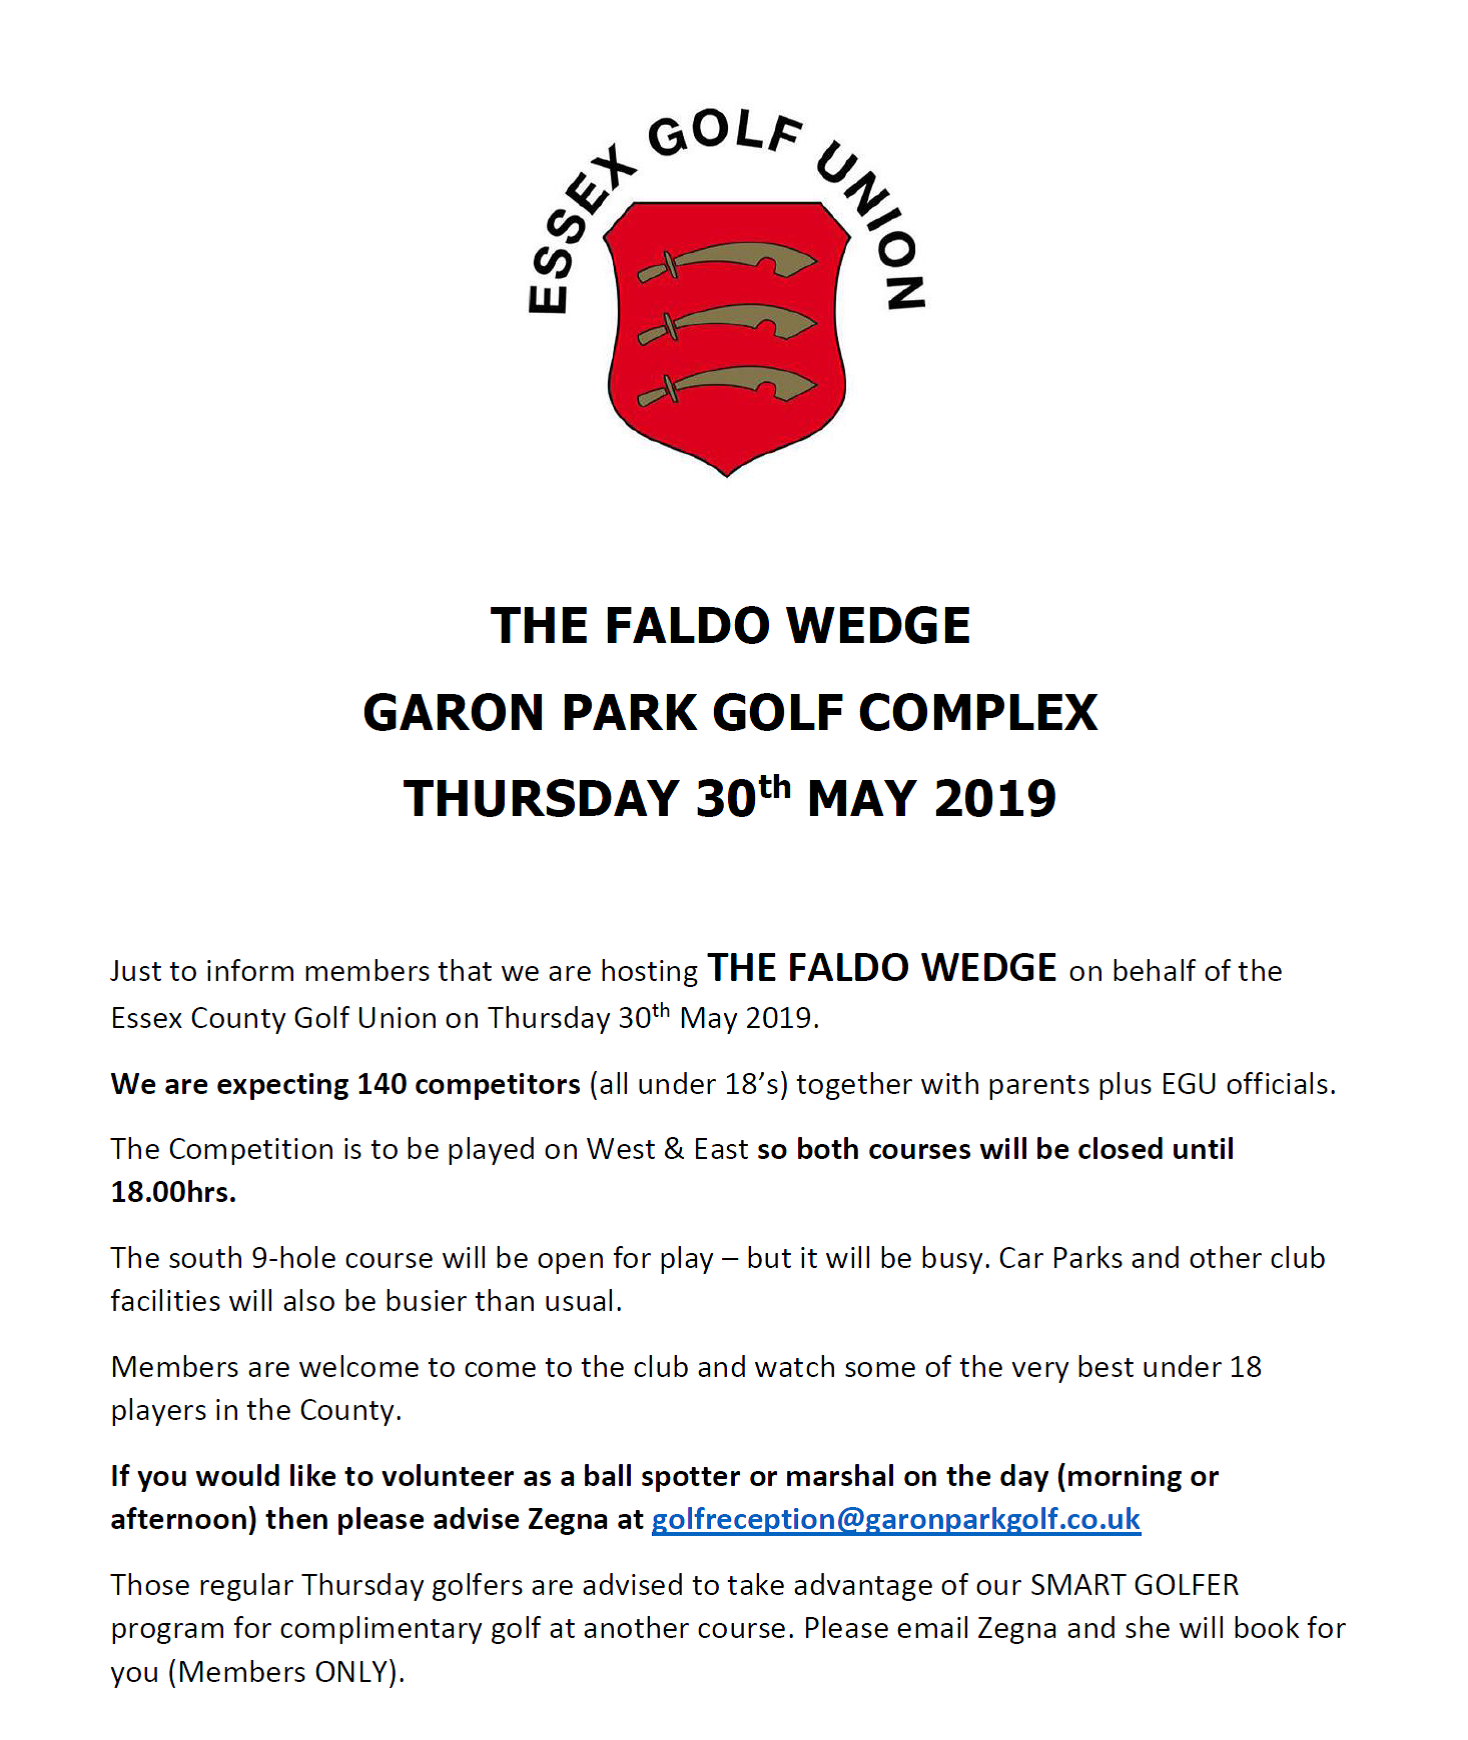 The Faldo Wedge